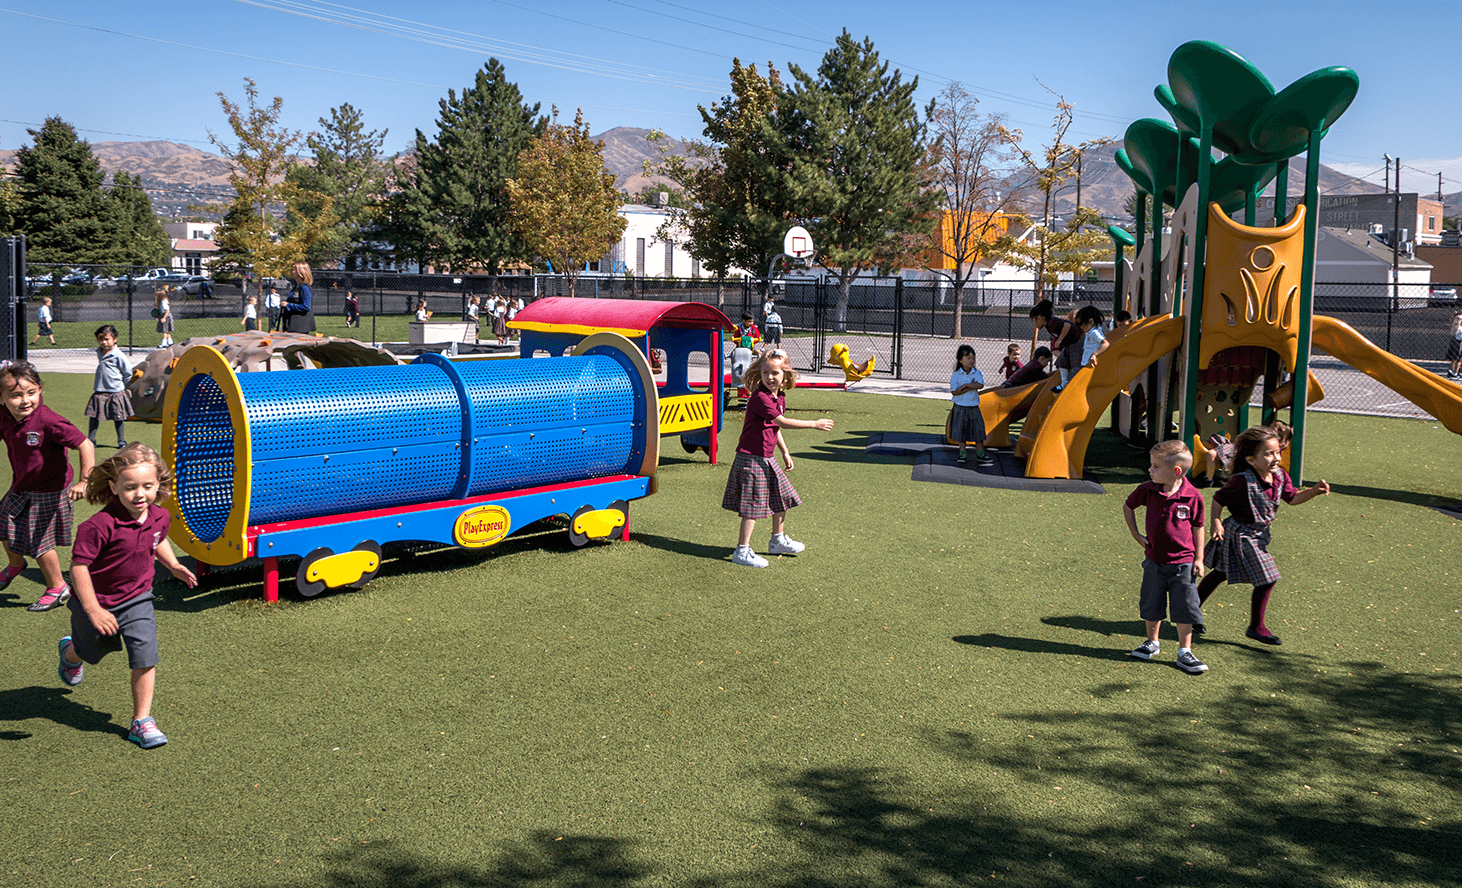 Preschool Slide | Challenger School - Salt Lake | Private School In Salt Lake City, Utah